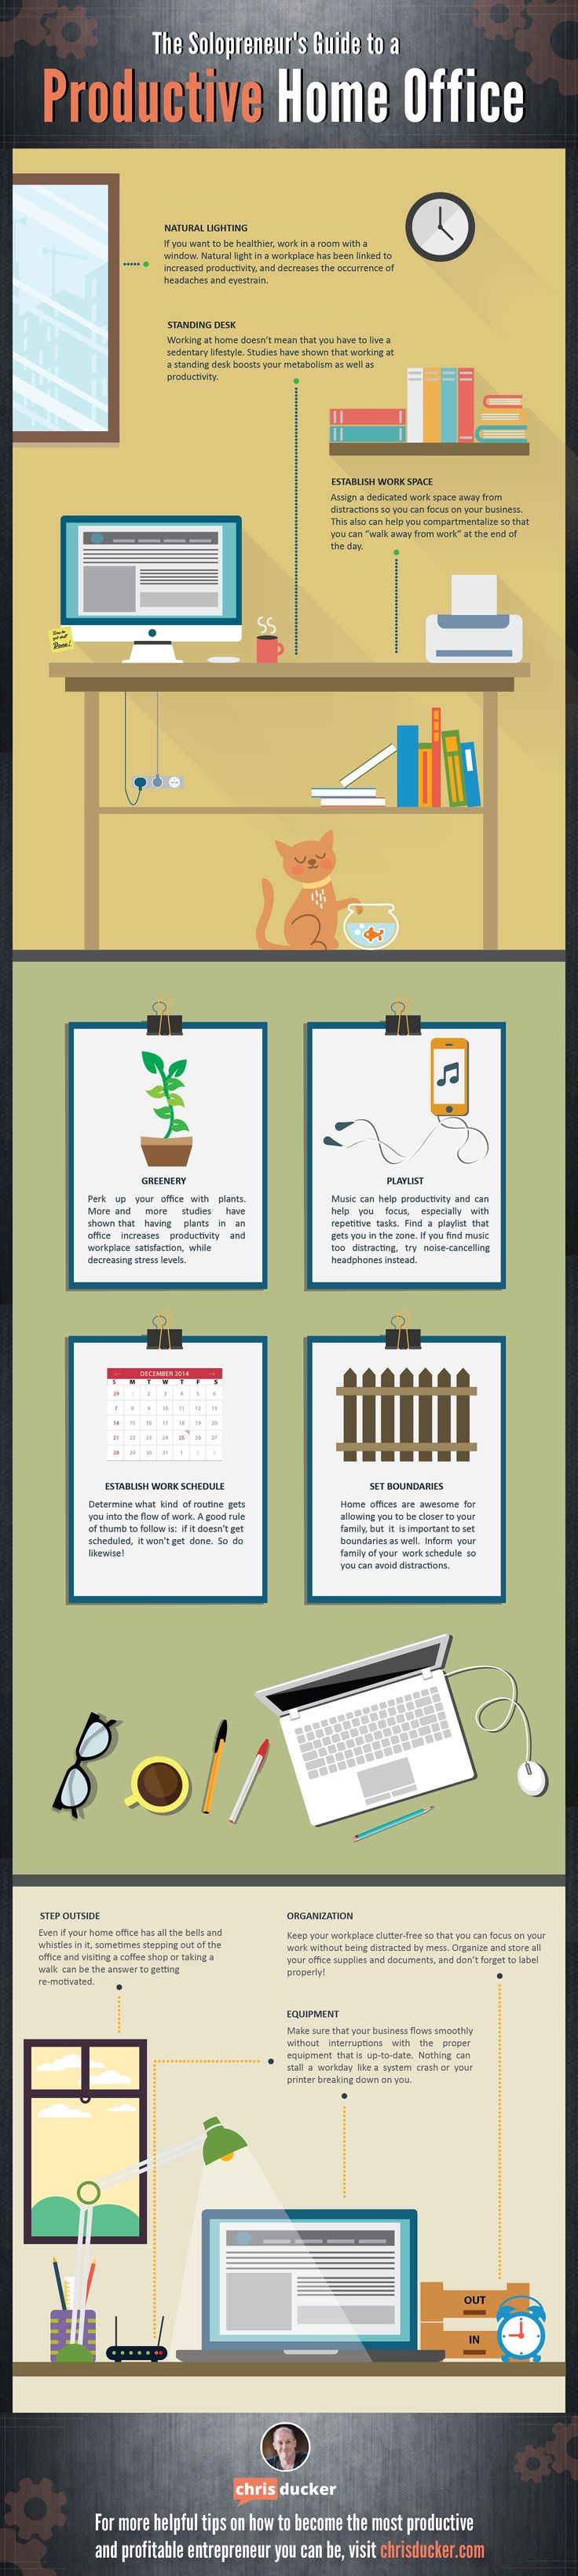 The Solopreneurs Guide to a Productive Home Office #Infographic #Business